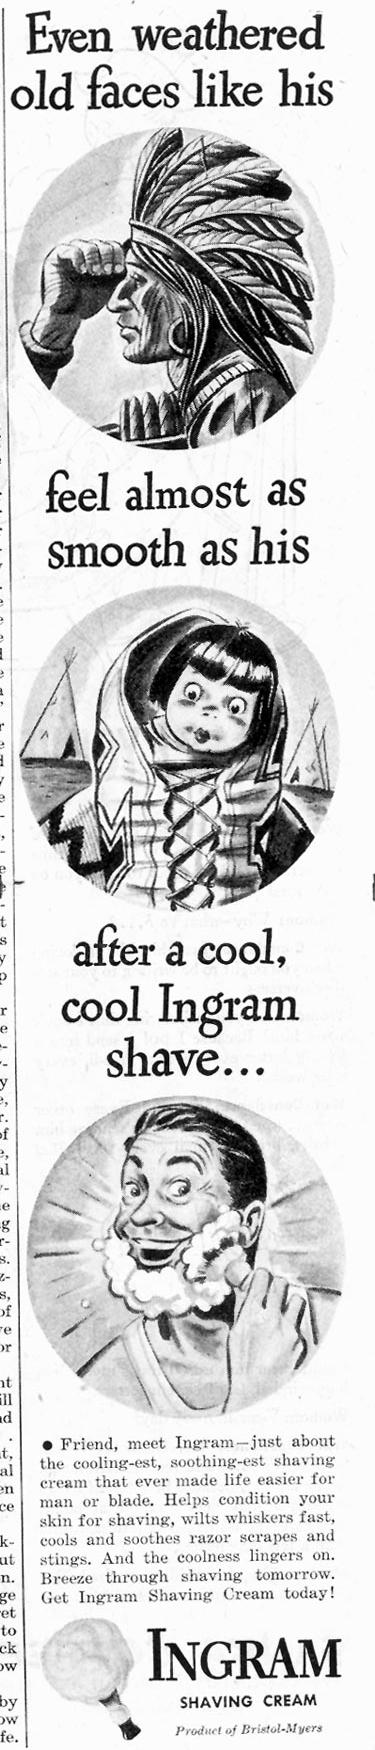 INGRAM SHAVING CREAM SATURDAY EVENING POST 05/19/1945 p. 41